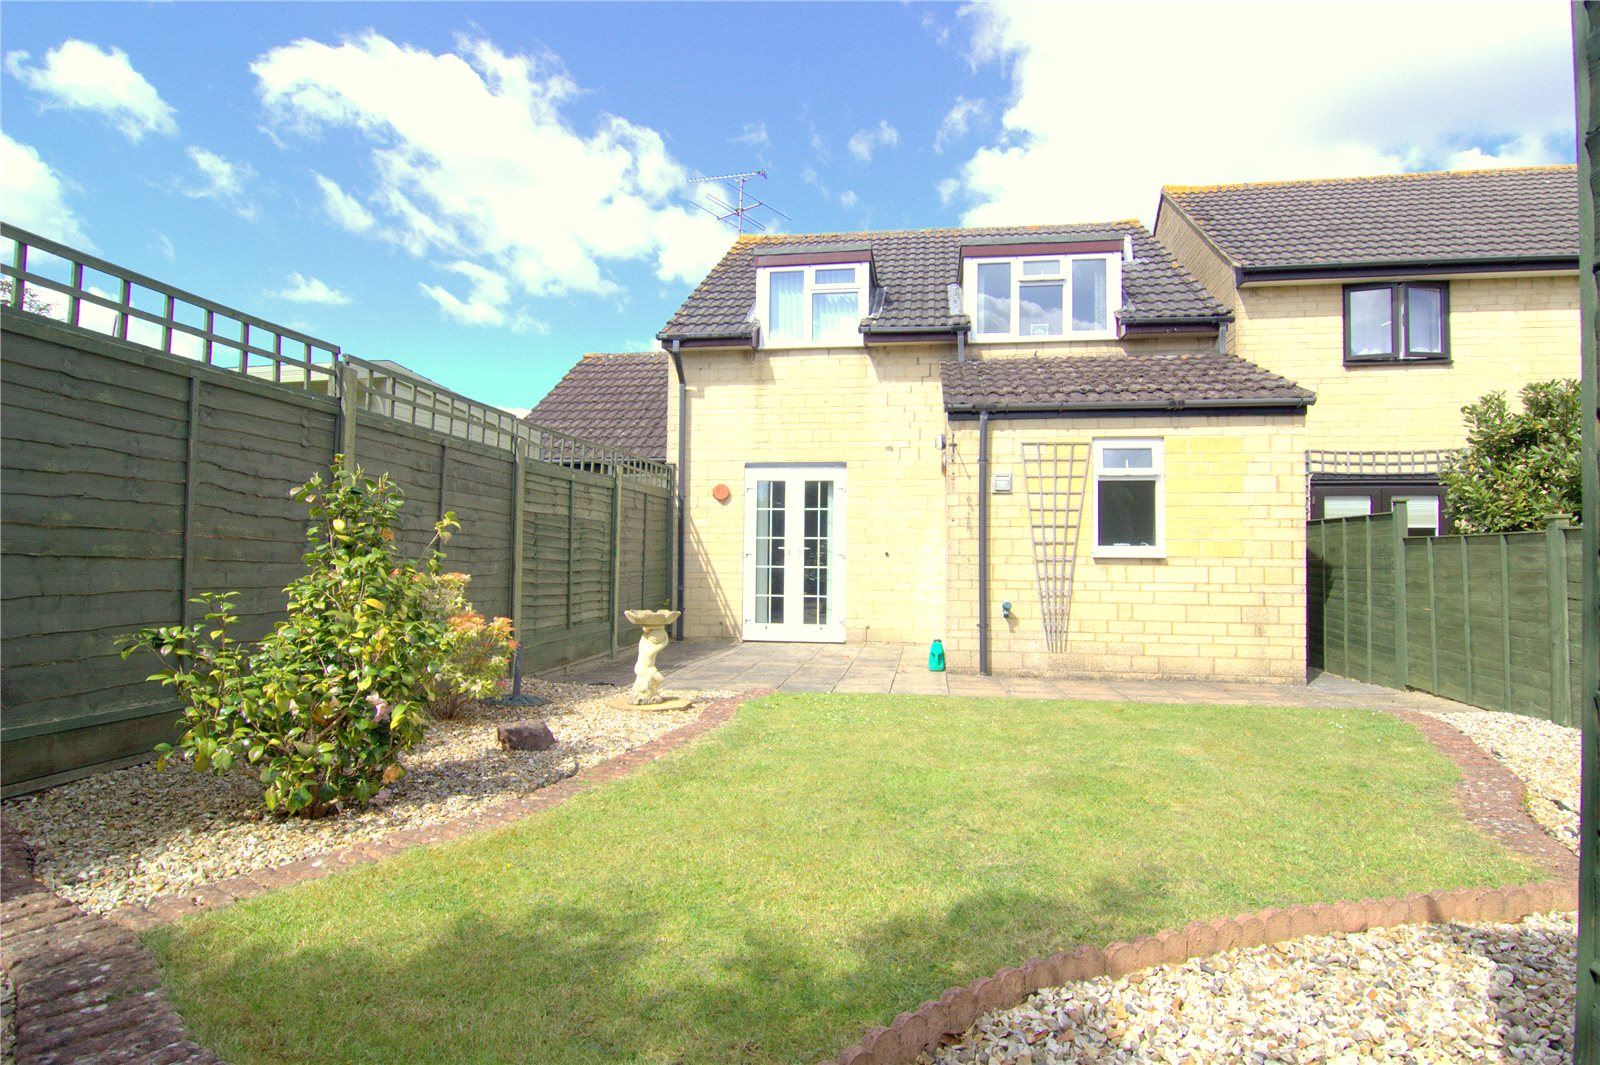 3 Bedrooms Detached House for sale in Pheasant Way Cirencester GL7